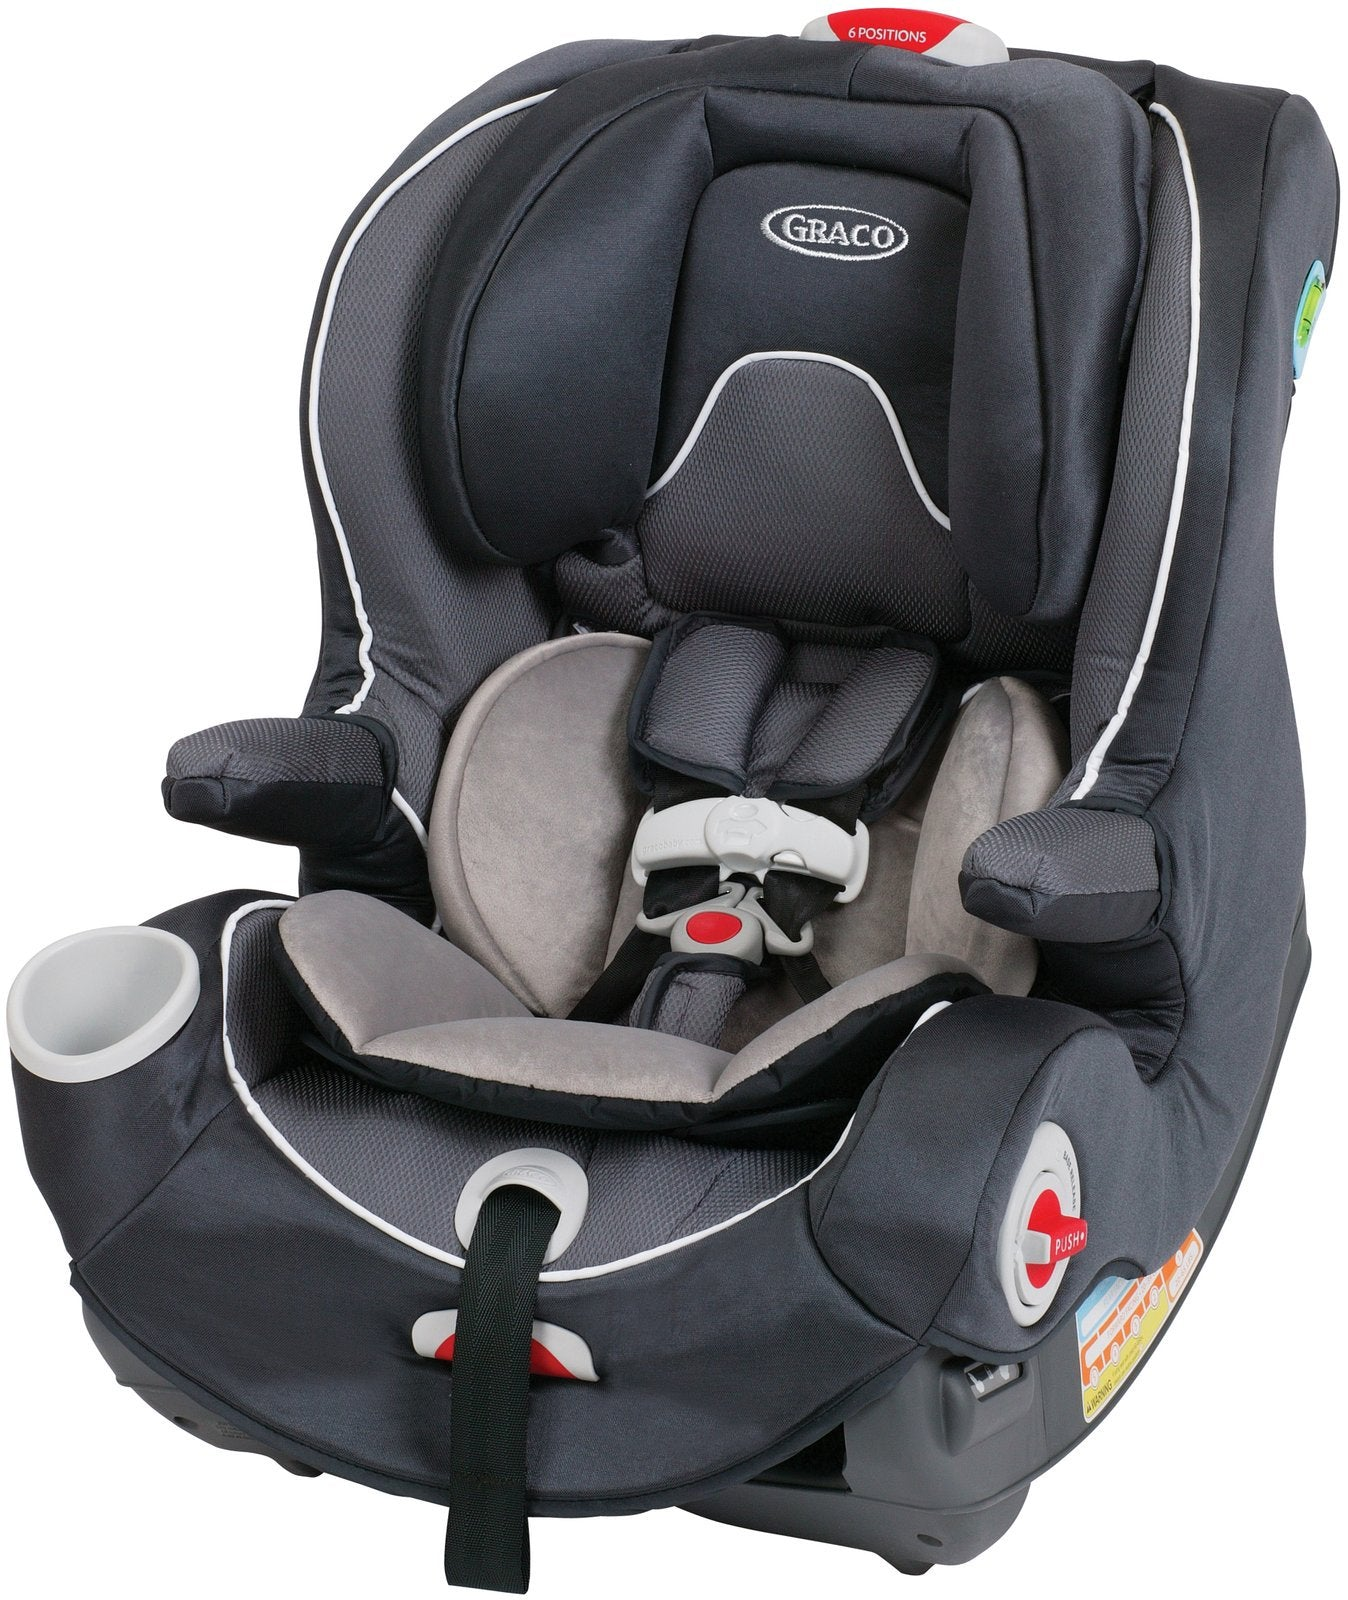 Car Seat, Essential Accessories for Convertible Baby Car Seats